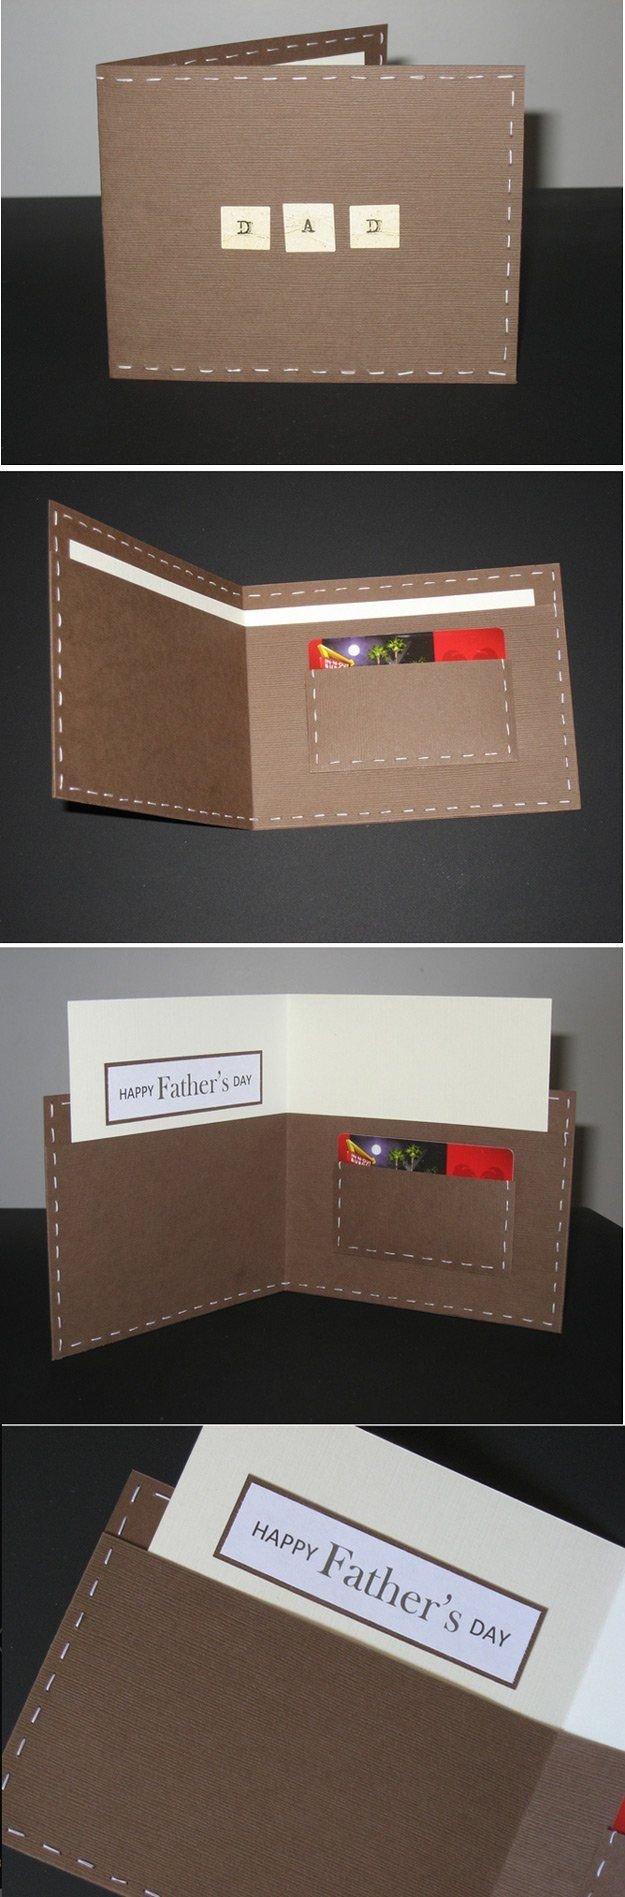 21 Ideas para tarjetas del día del Padre   -   21 Diy Ideas for Father´s day cards